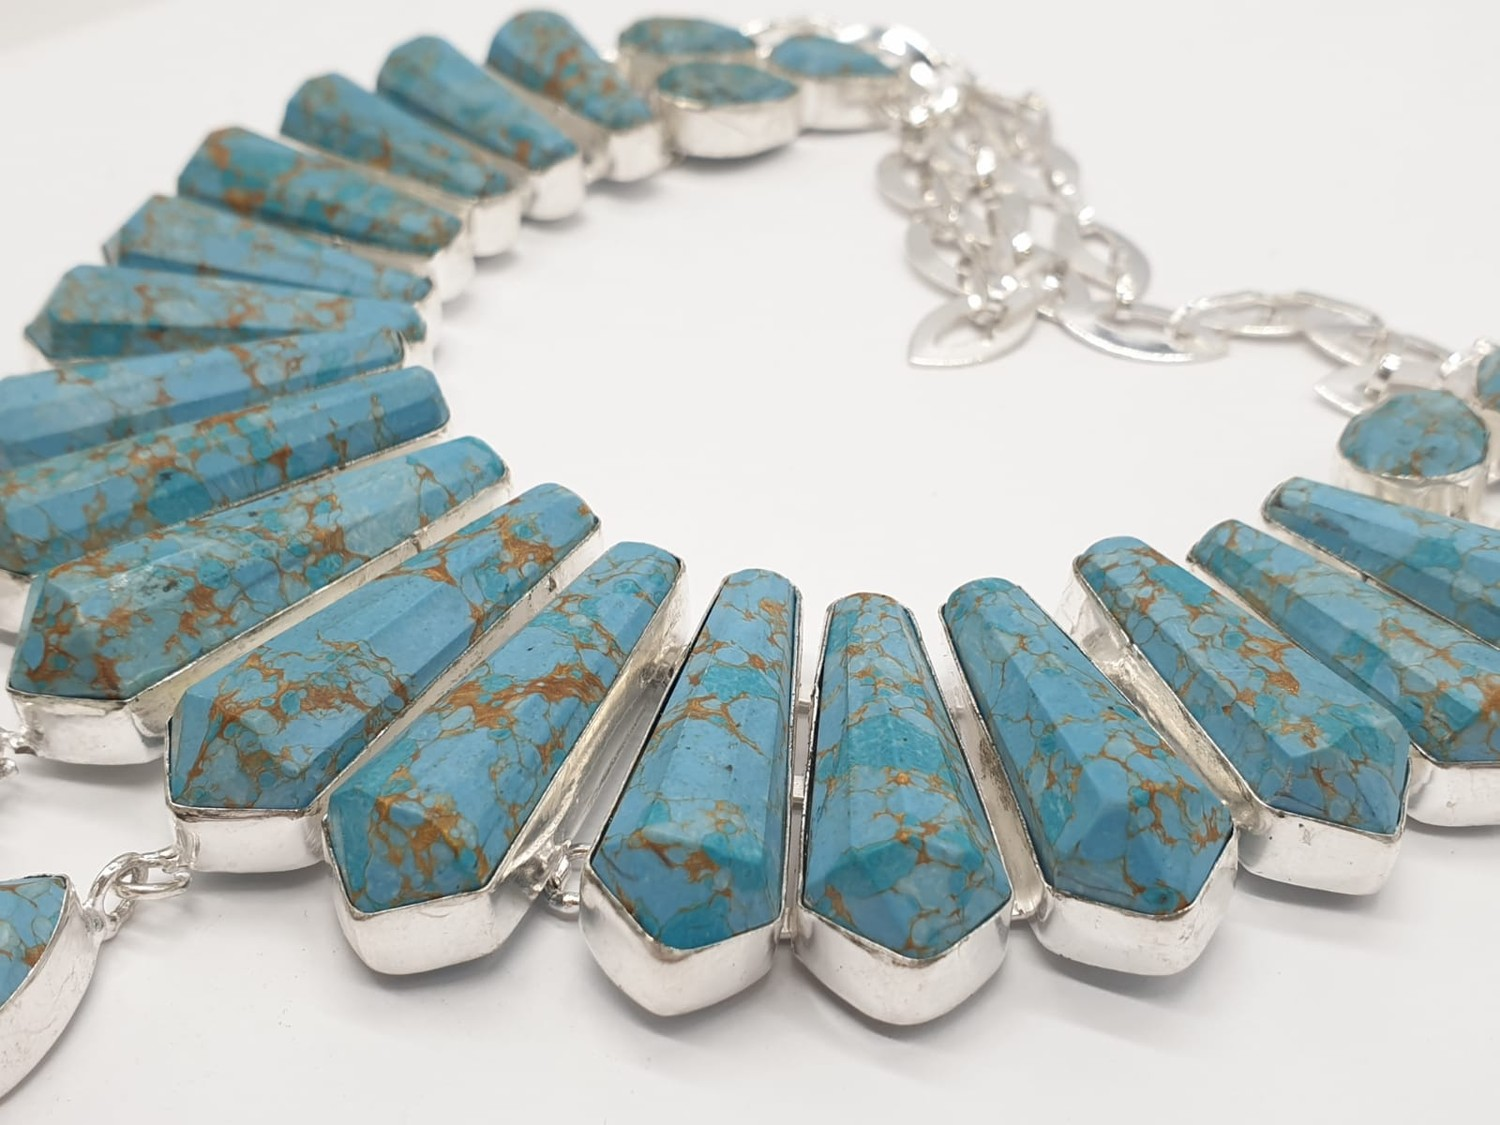 A Pharaonic style necklace and earrings set with light brown-gold veined turquoise obelisks and - Image 4 of 24